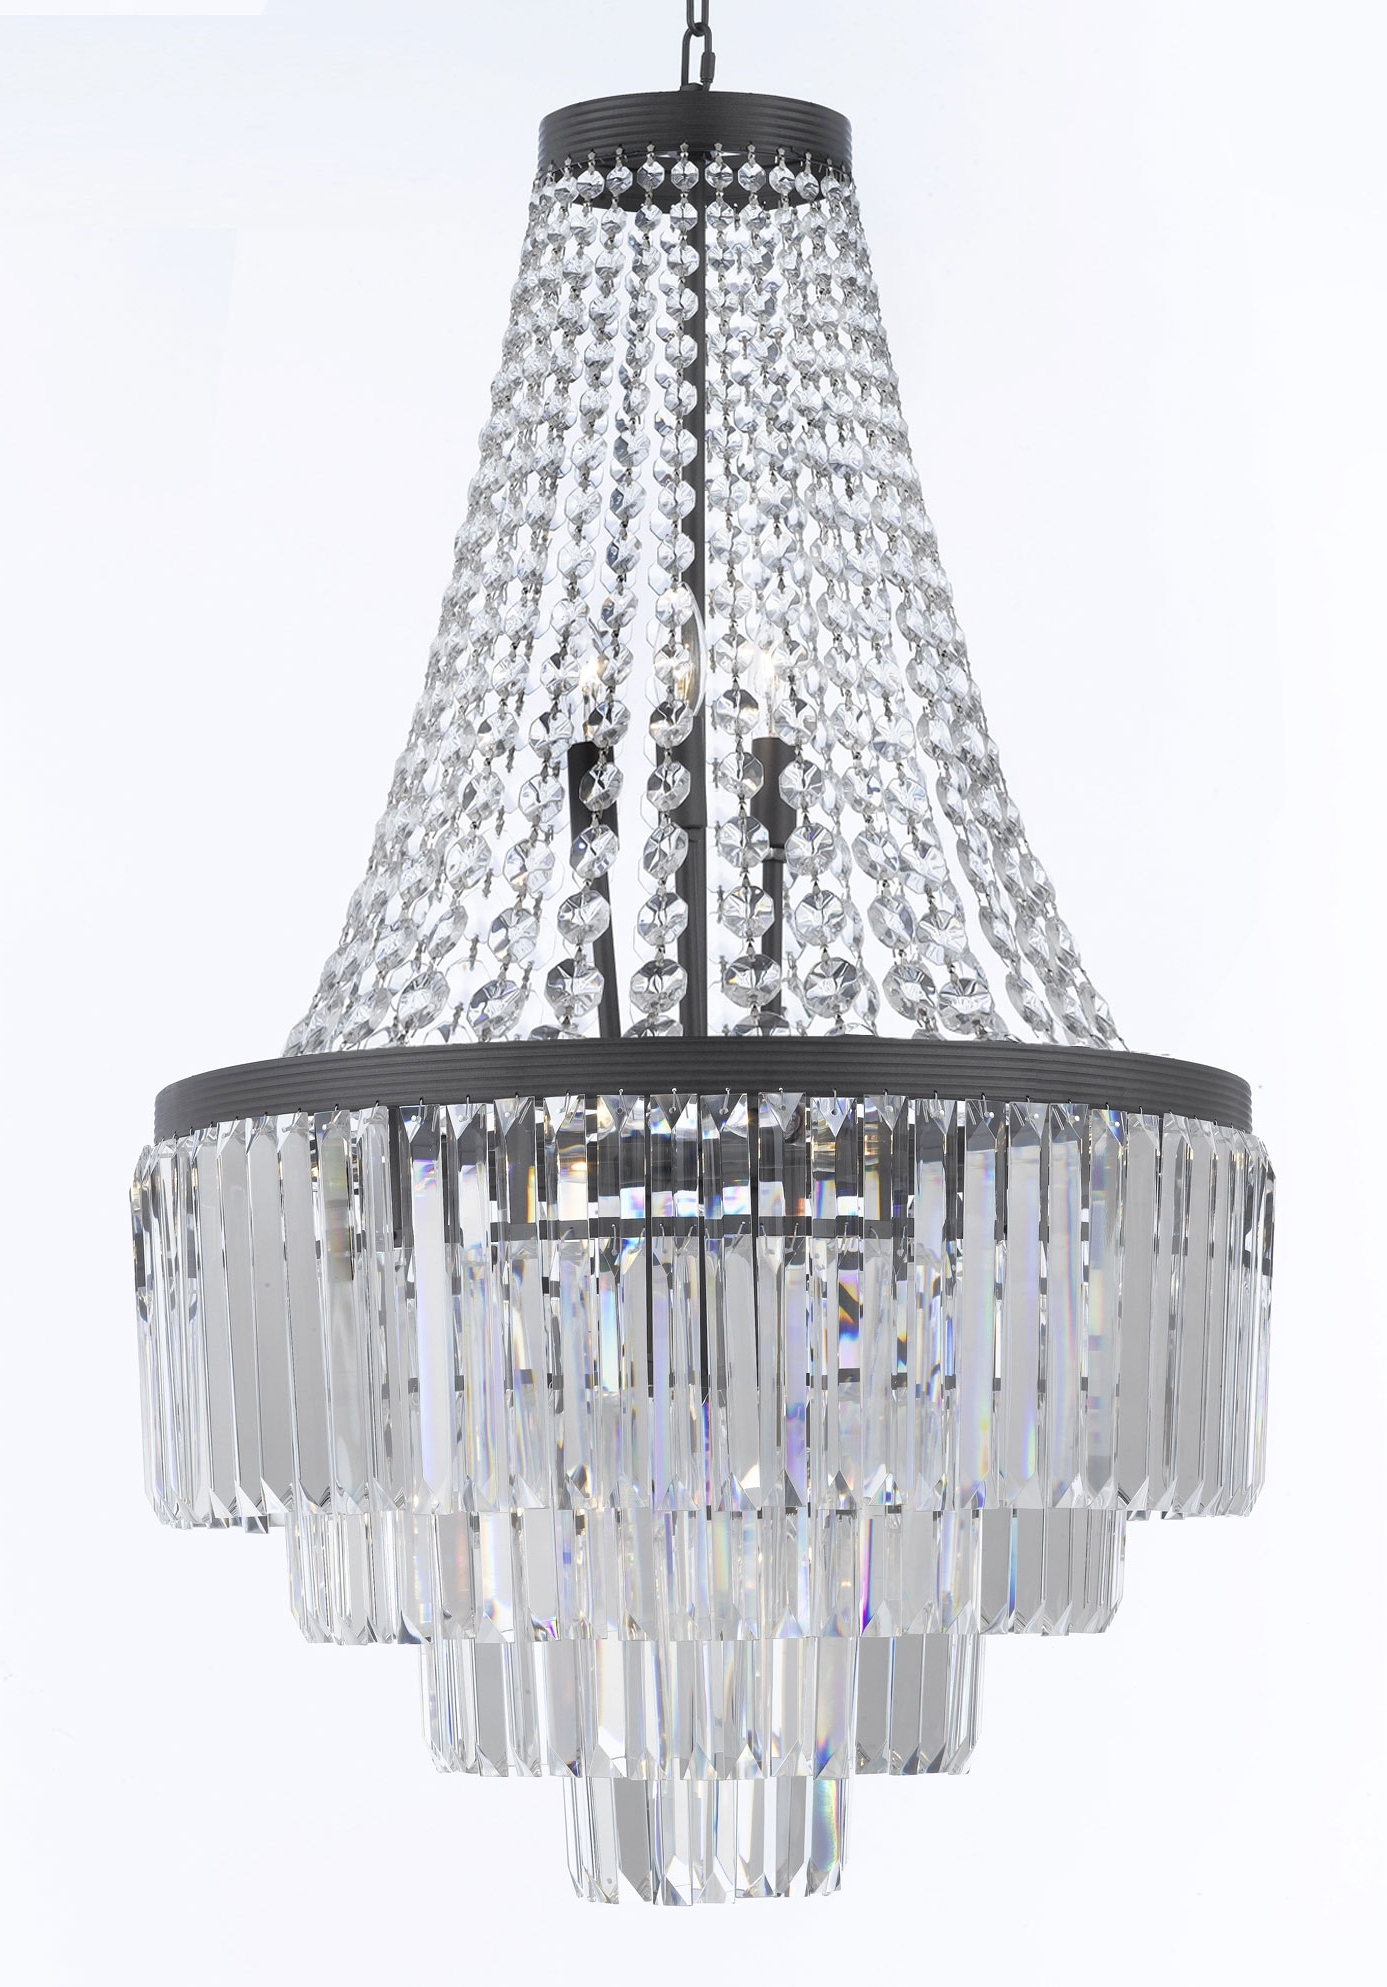 Preferred 3 Tier Crystal Chandelier Intended For G7 1100/9 Gallery Chandeliers Retro Odeon Crystal Glass Fringe  (View 17 of 20)